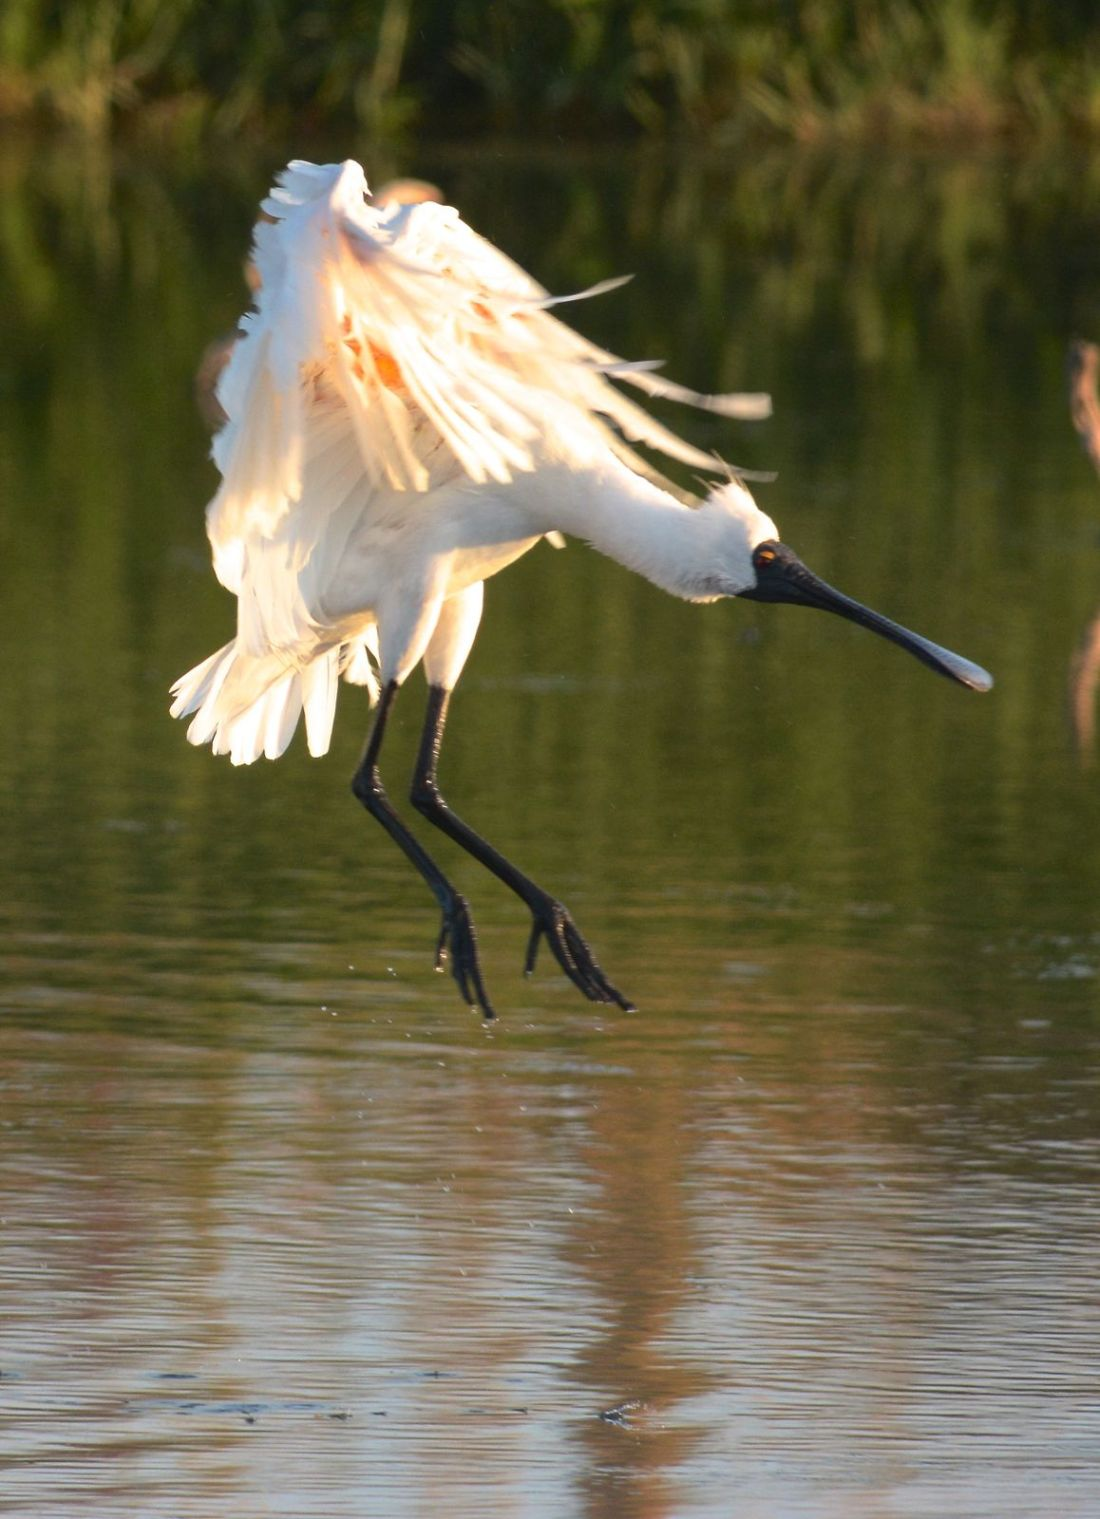 Royal Spoonbill who stopped in the middle of a preen for a bit of a dance in the water.